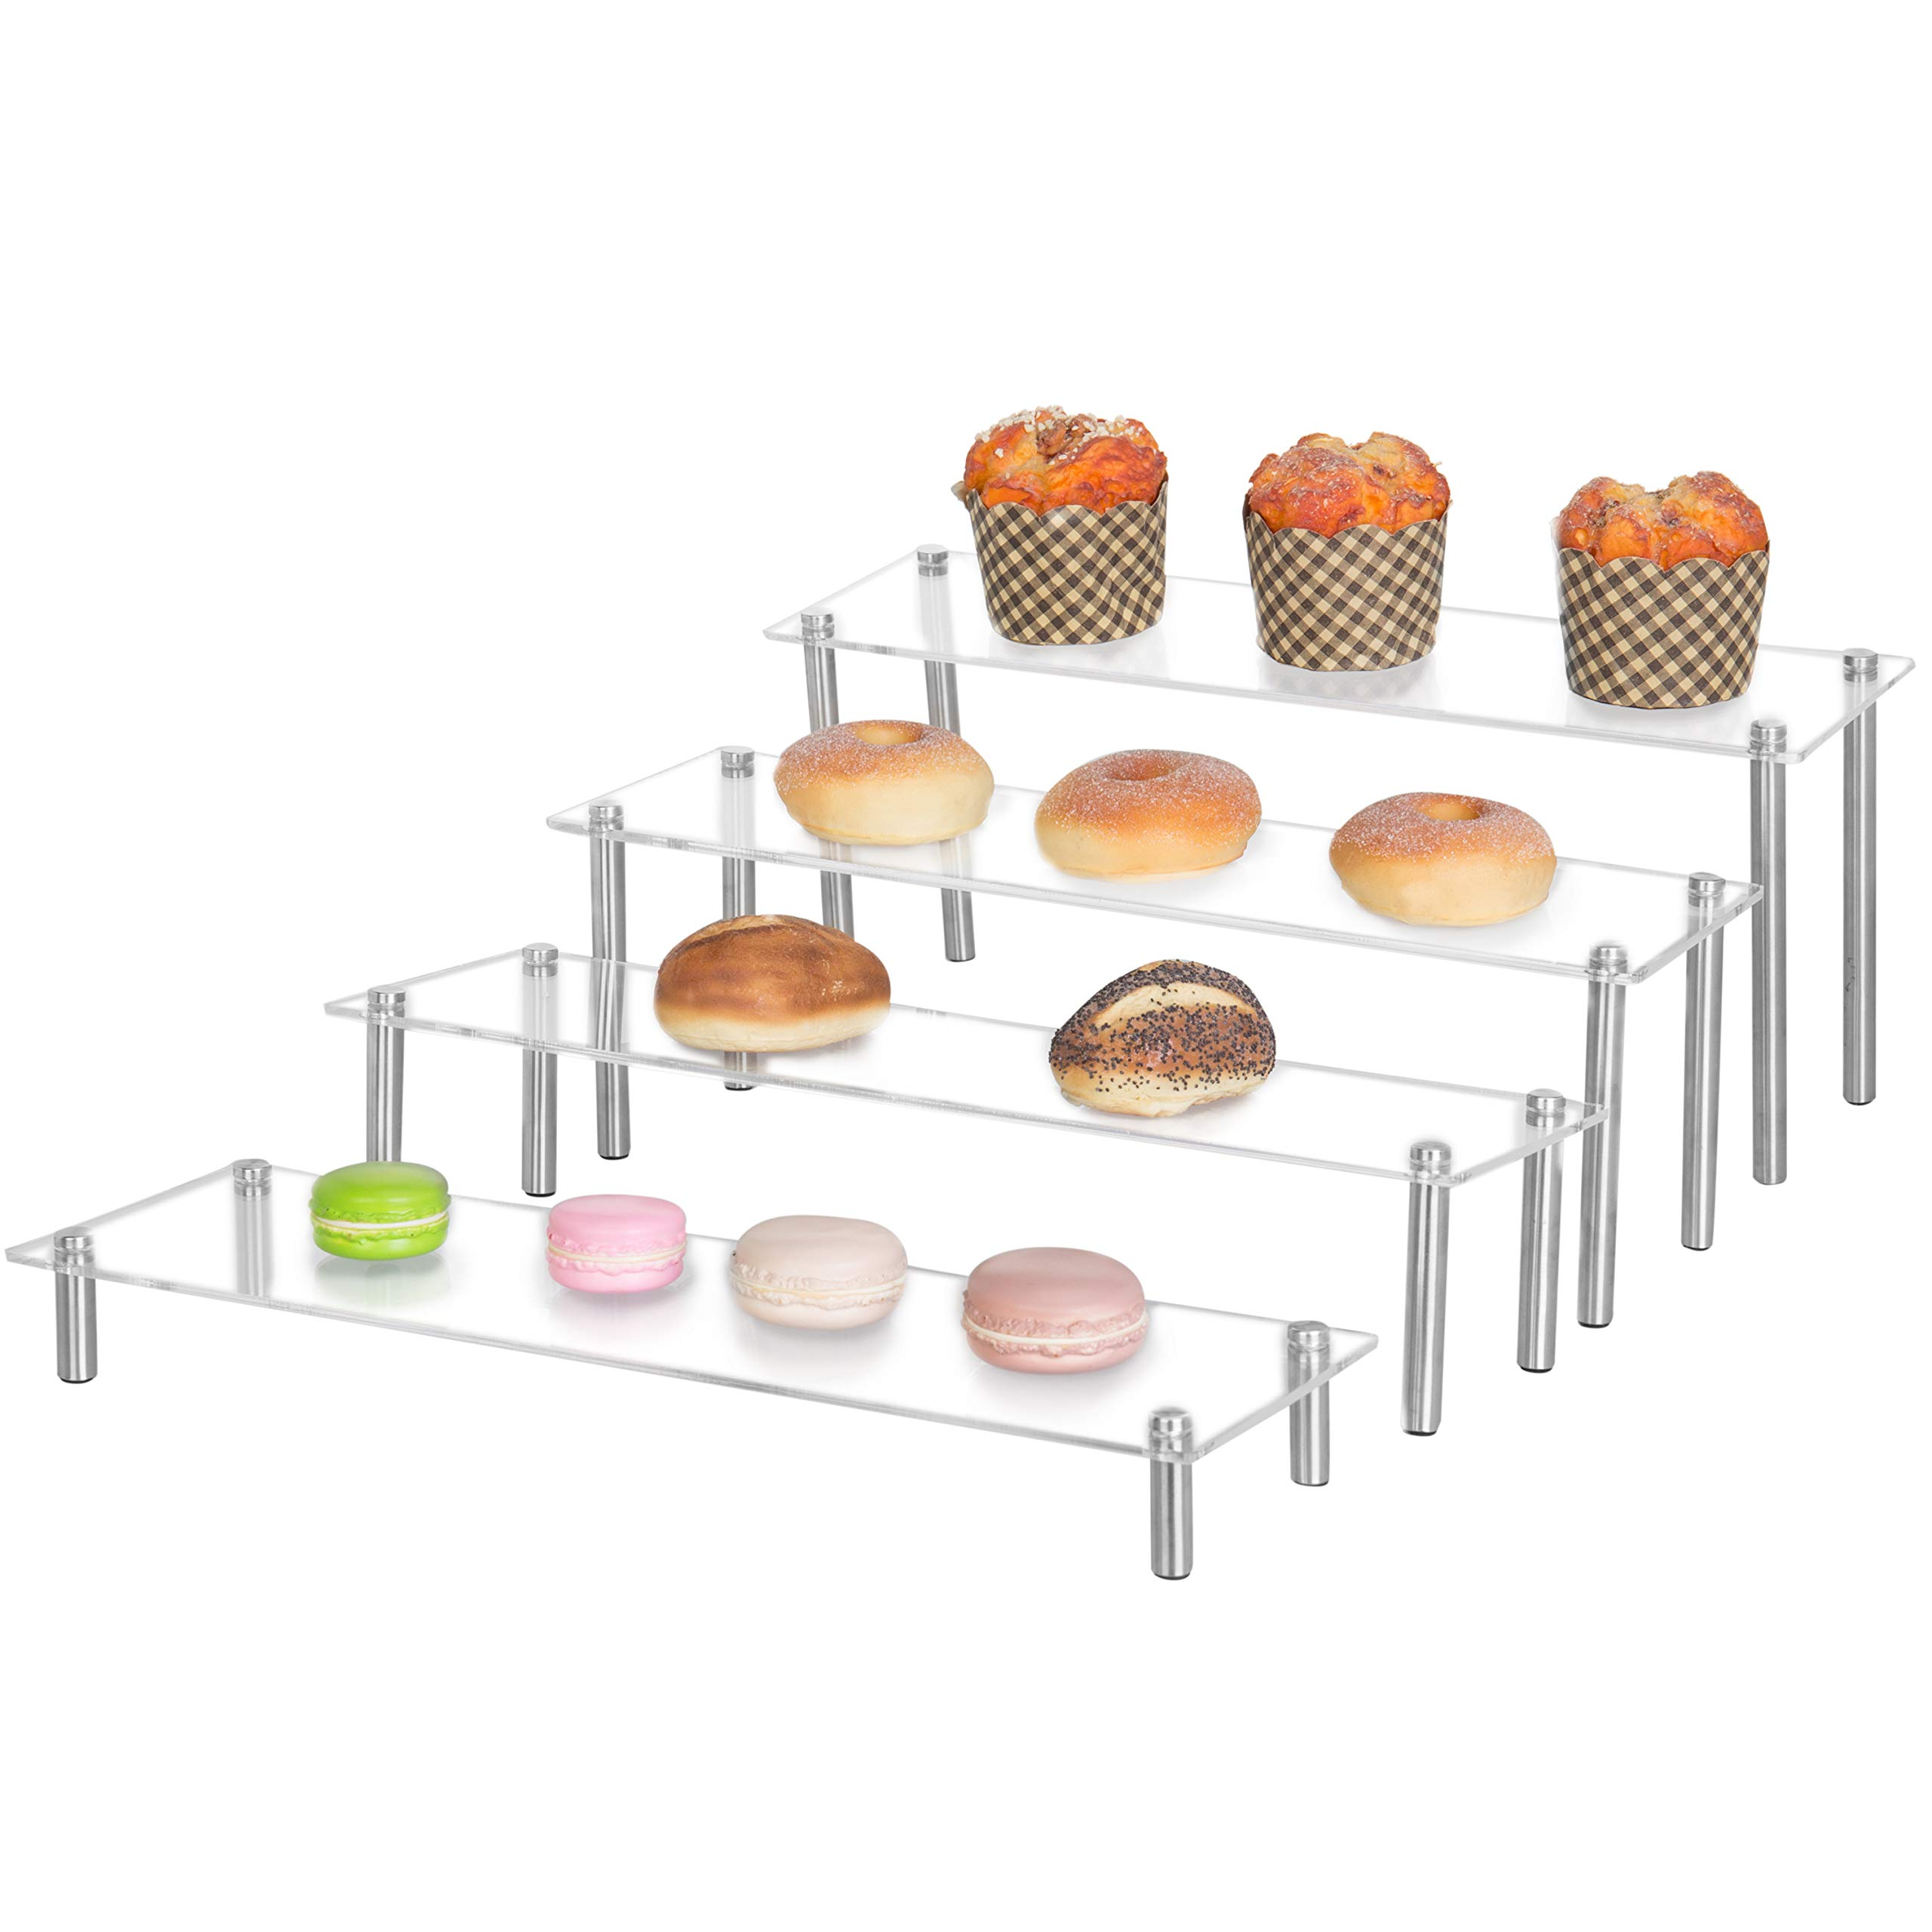 MyGift 4-Tier Rectangular Clear Acrylic Cupcake Dessert Display Stand Riser, Set of 4